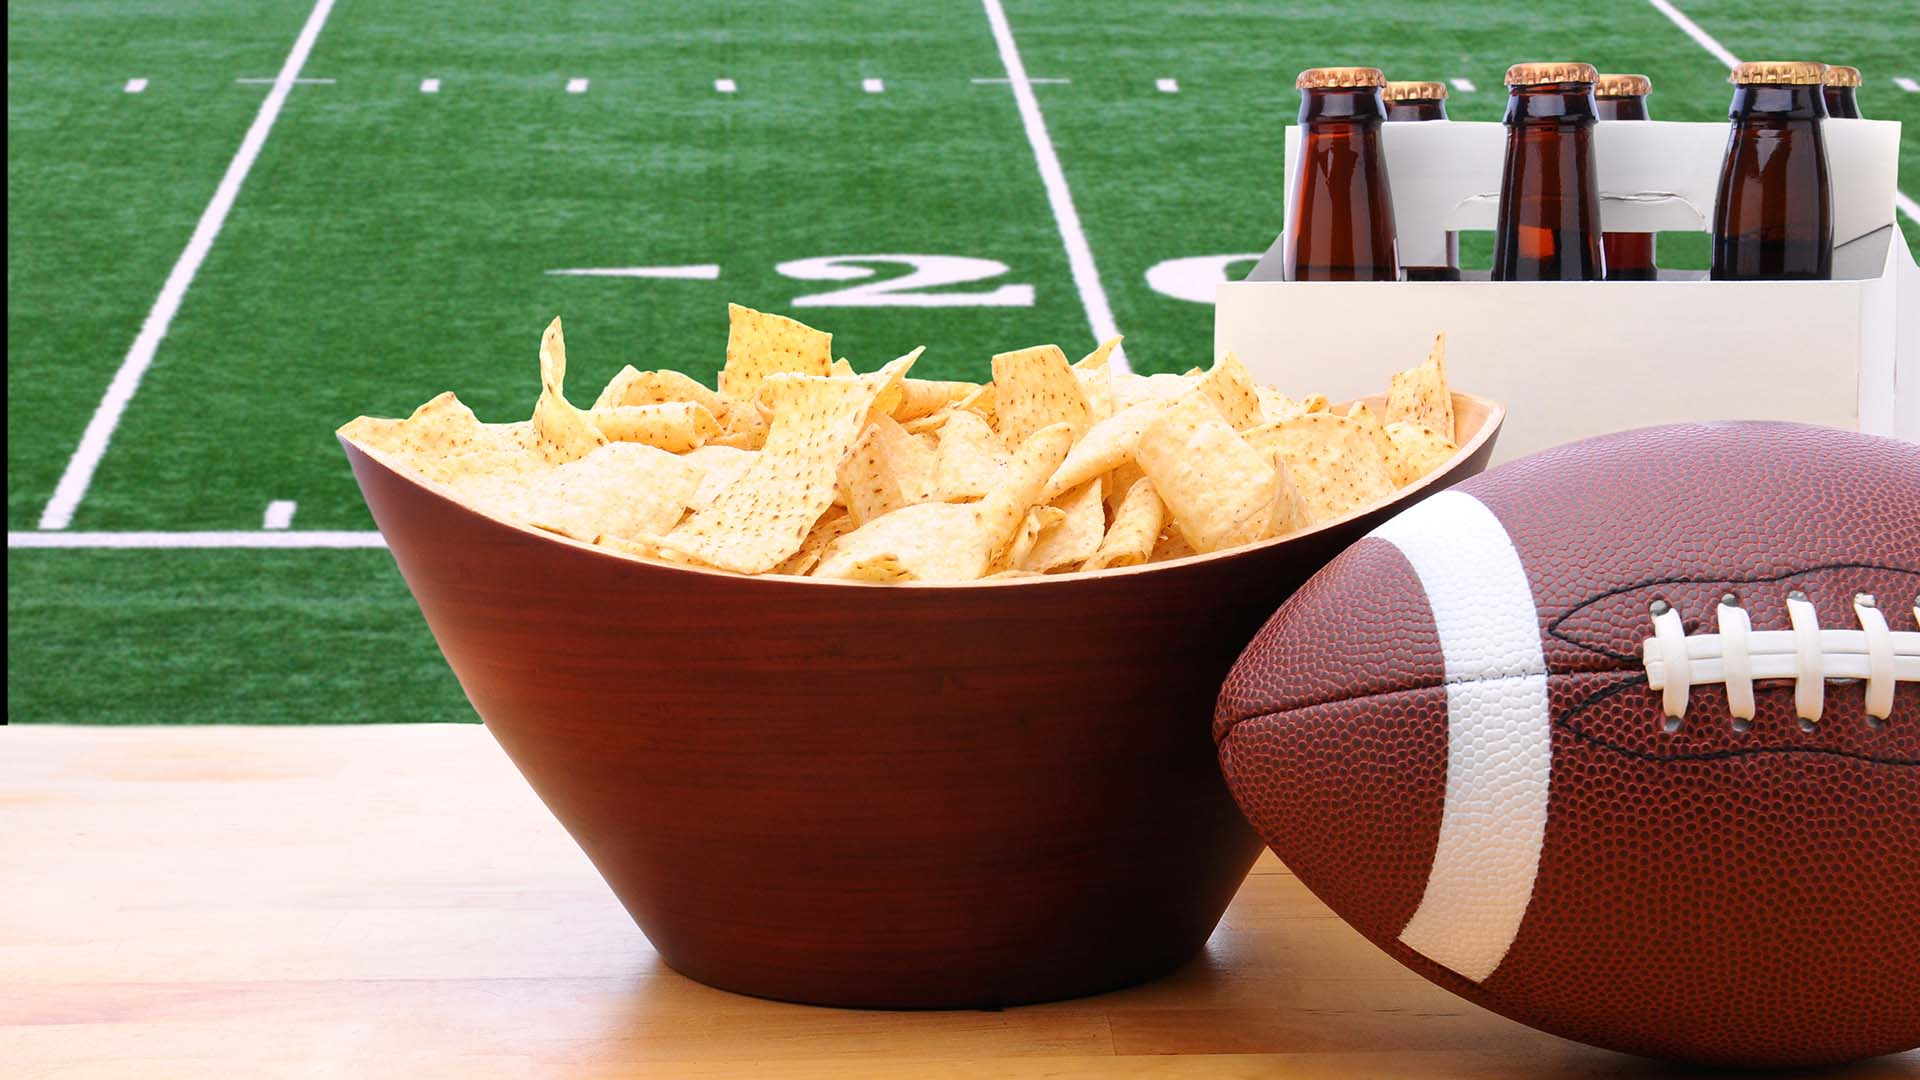 Football-Super-Bowl-TV-commercials-ss-1920